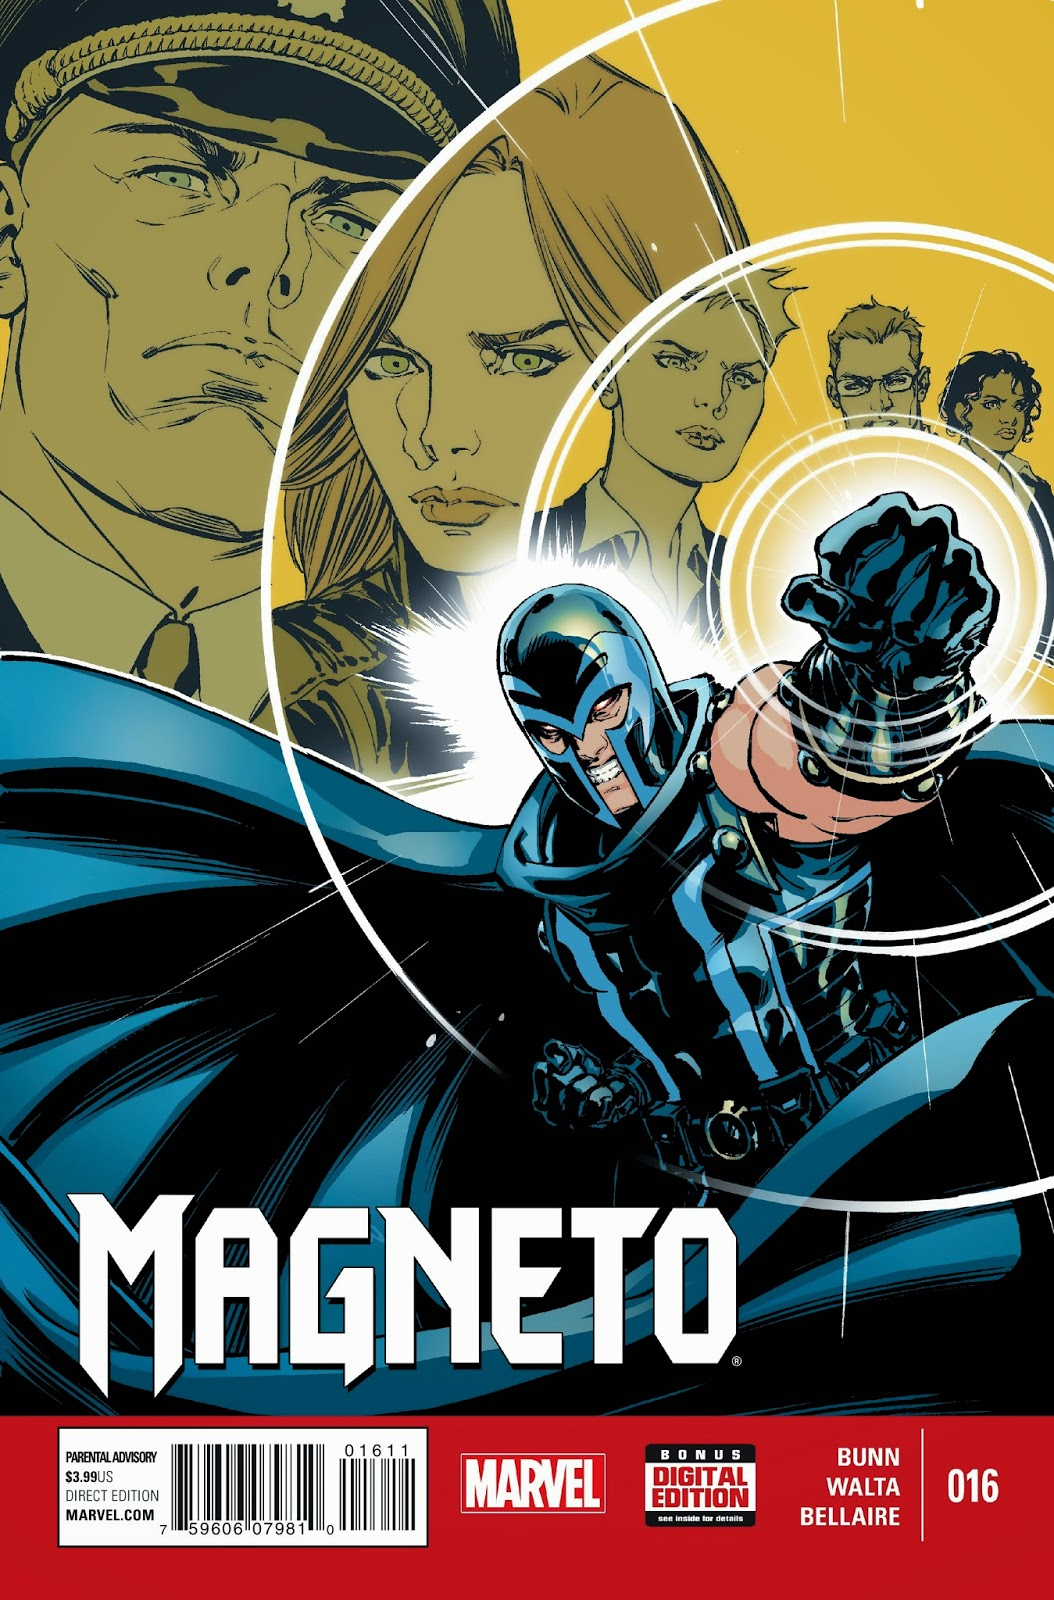 Magneto faces the ghosts of his past in the present